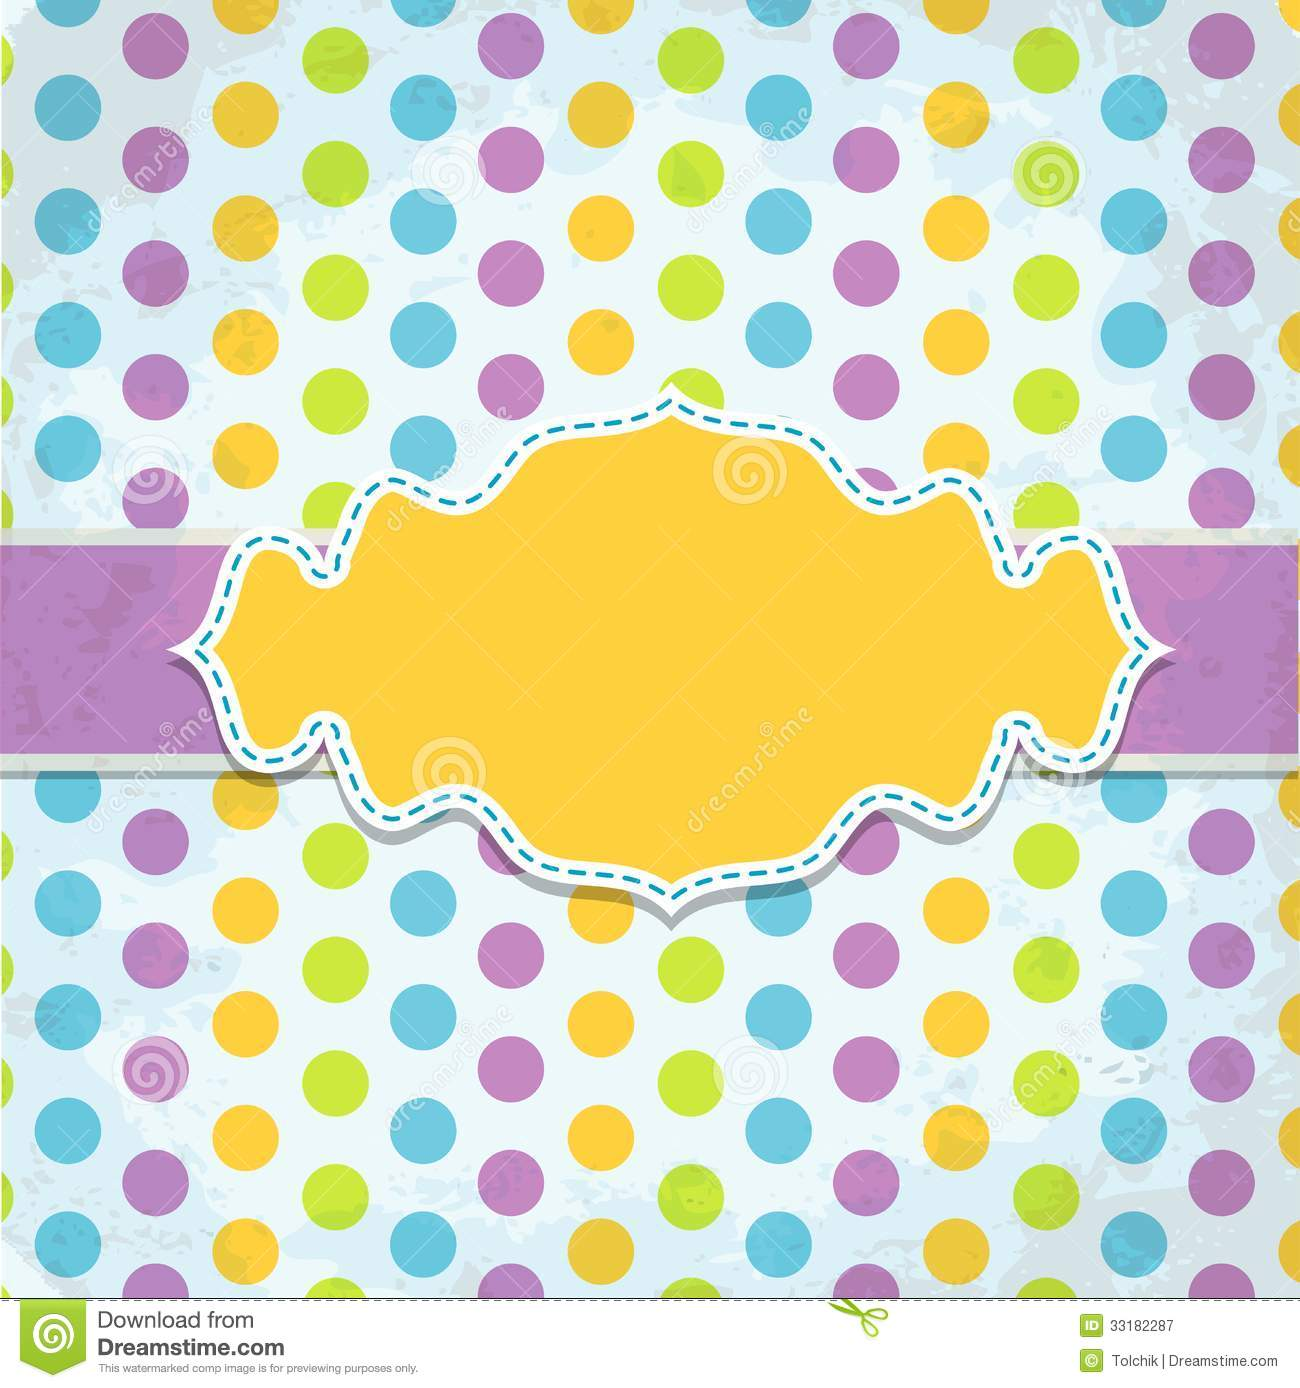 Template Greeting Card Royalty Free Stock Image: Template Greeting Card, Vector Royalty Free Stock